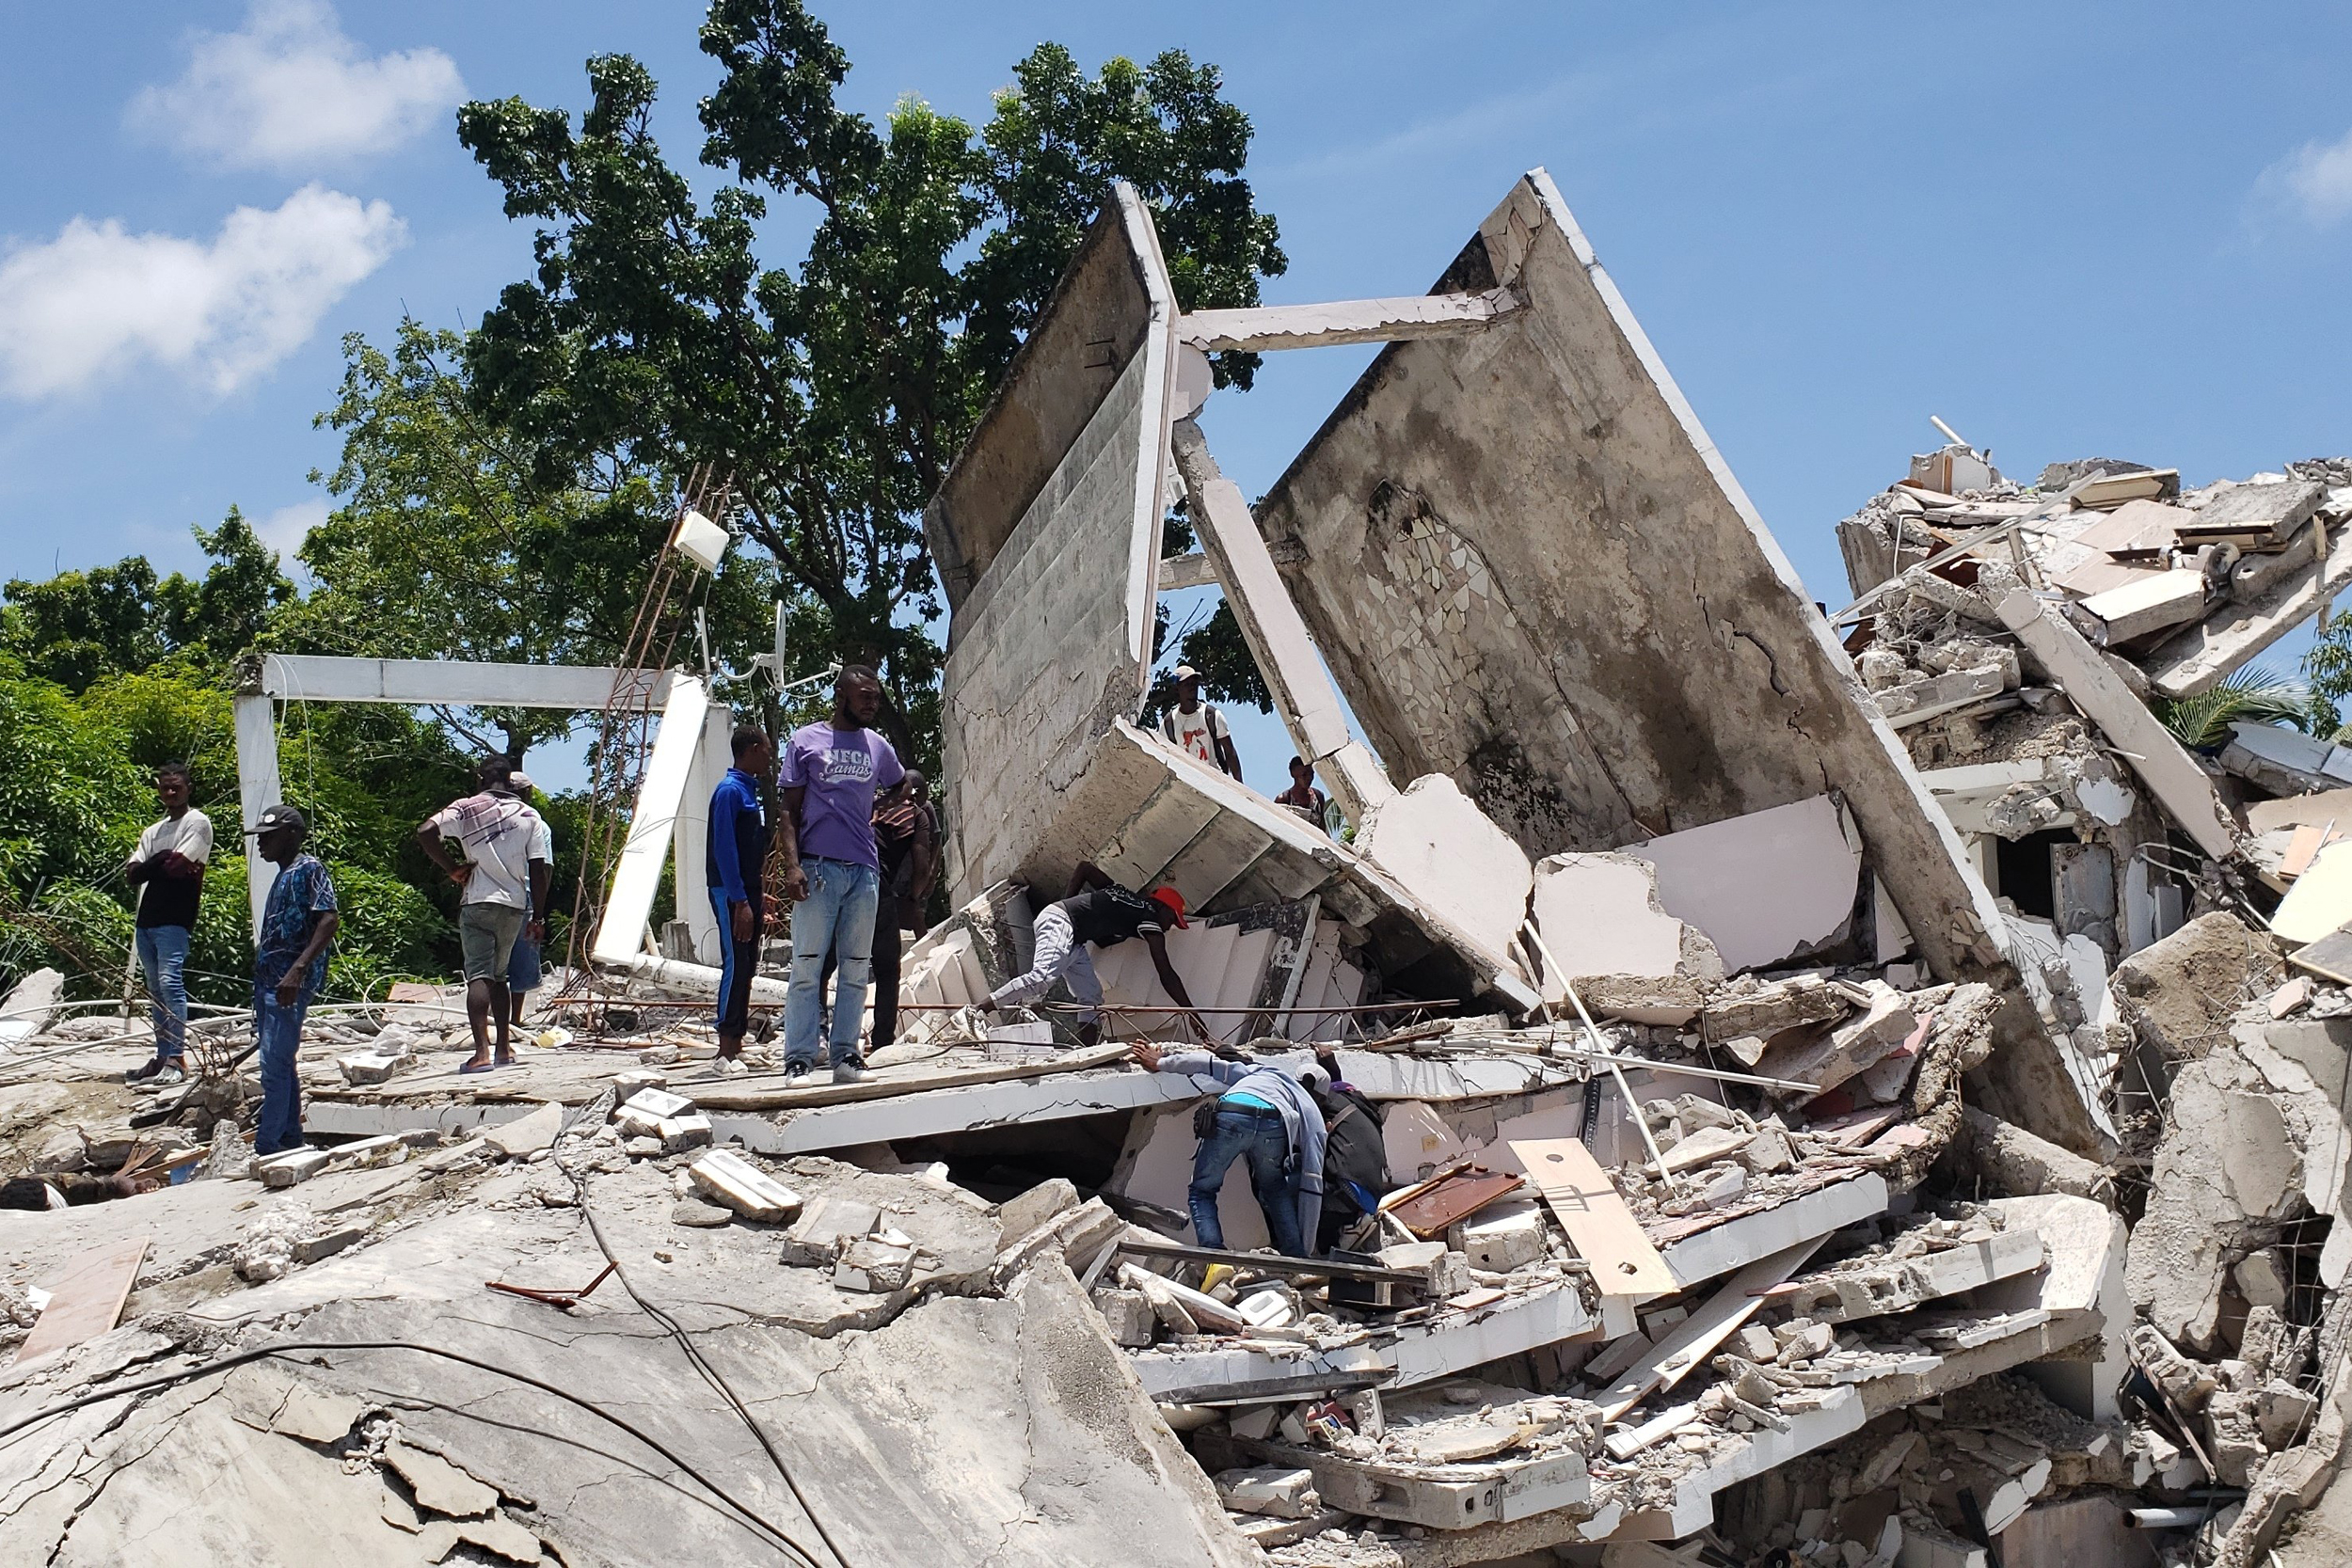 At least 227 dead after 7.2-magnitude earthquake strikes Haiti, officials say